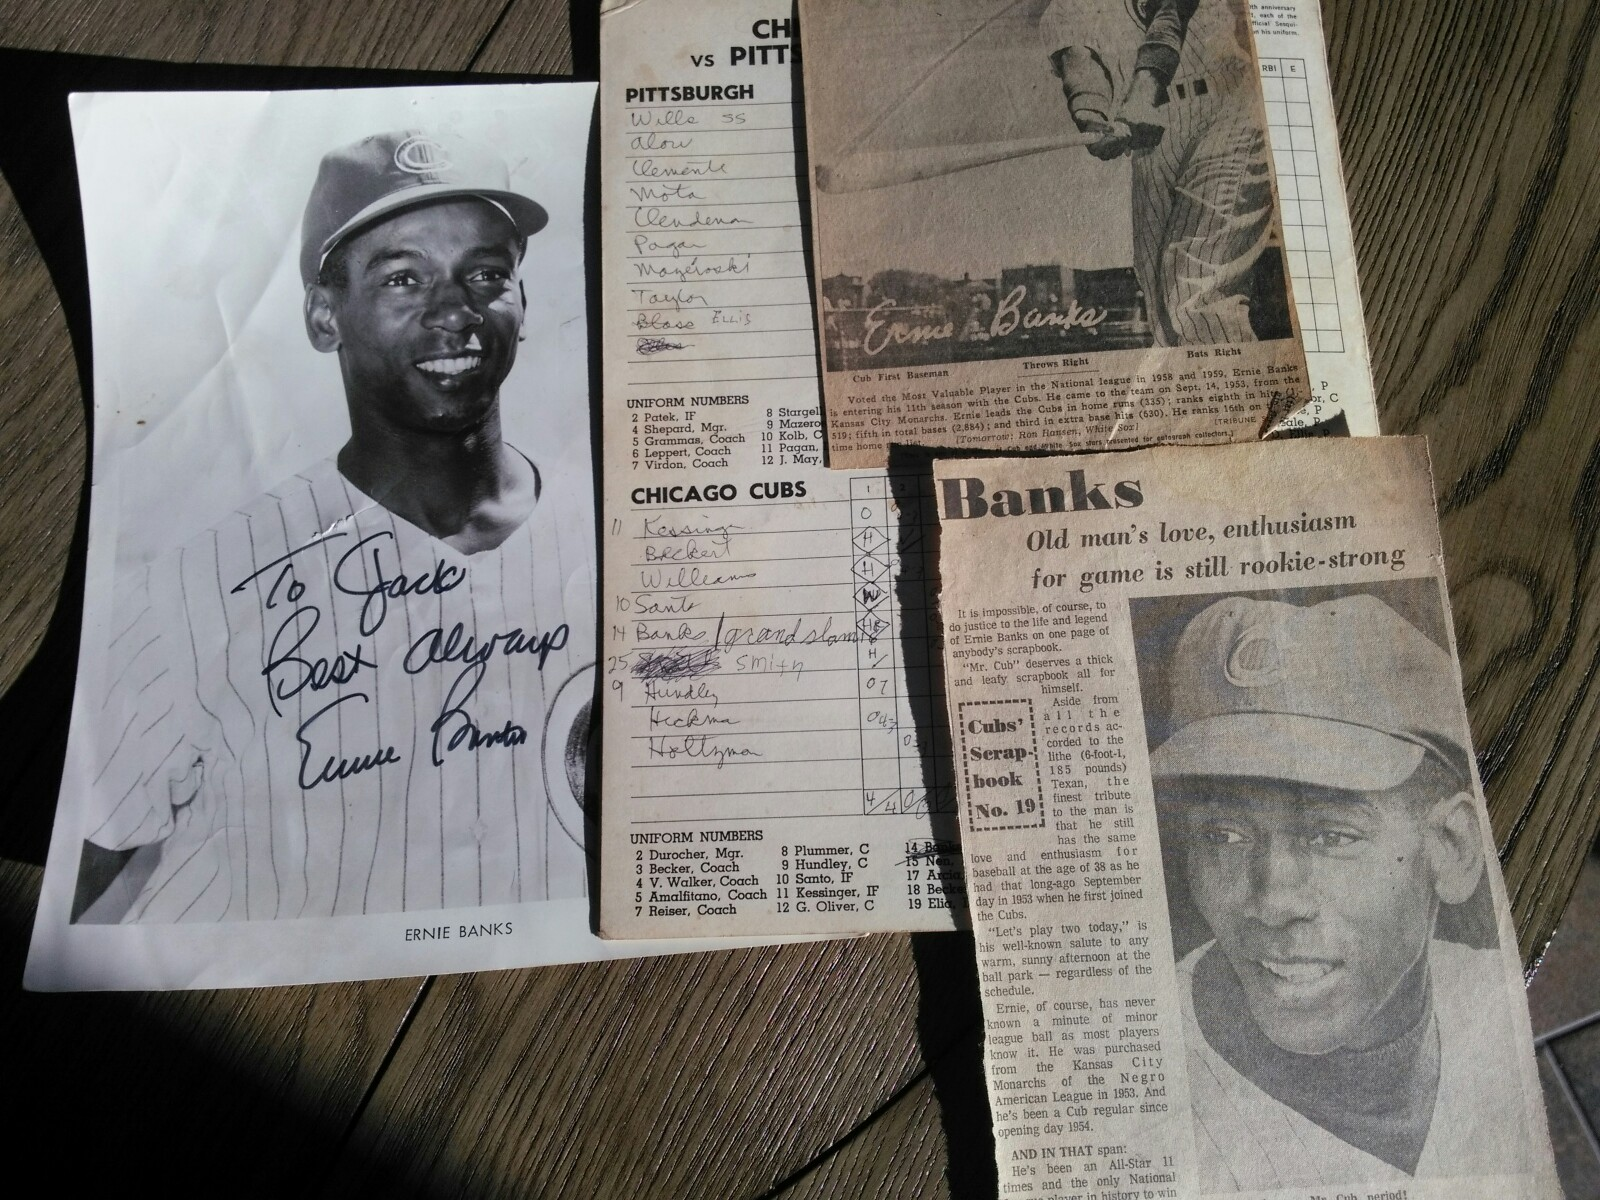 This is the photo that my big brother got that day along with some really cool pieces of Ernie Banks history. That score card takes me right back!